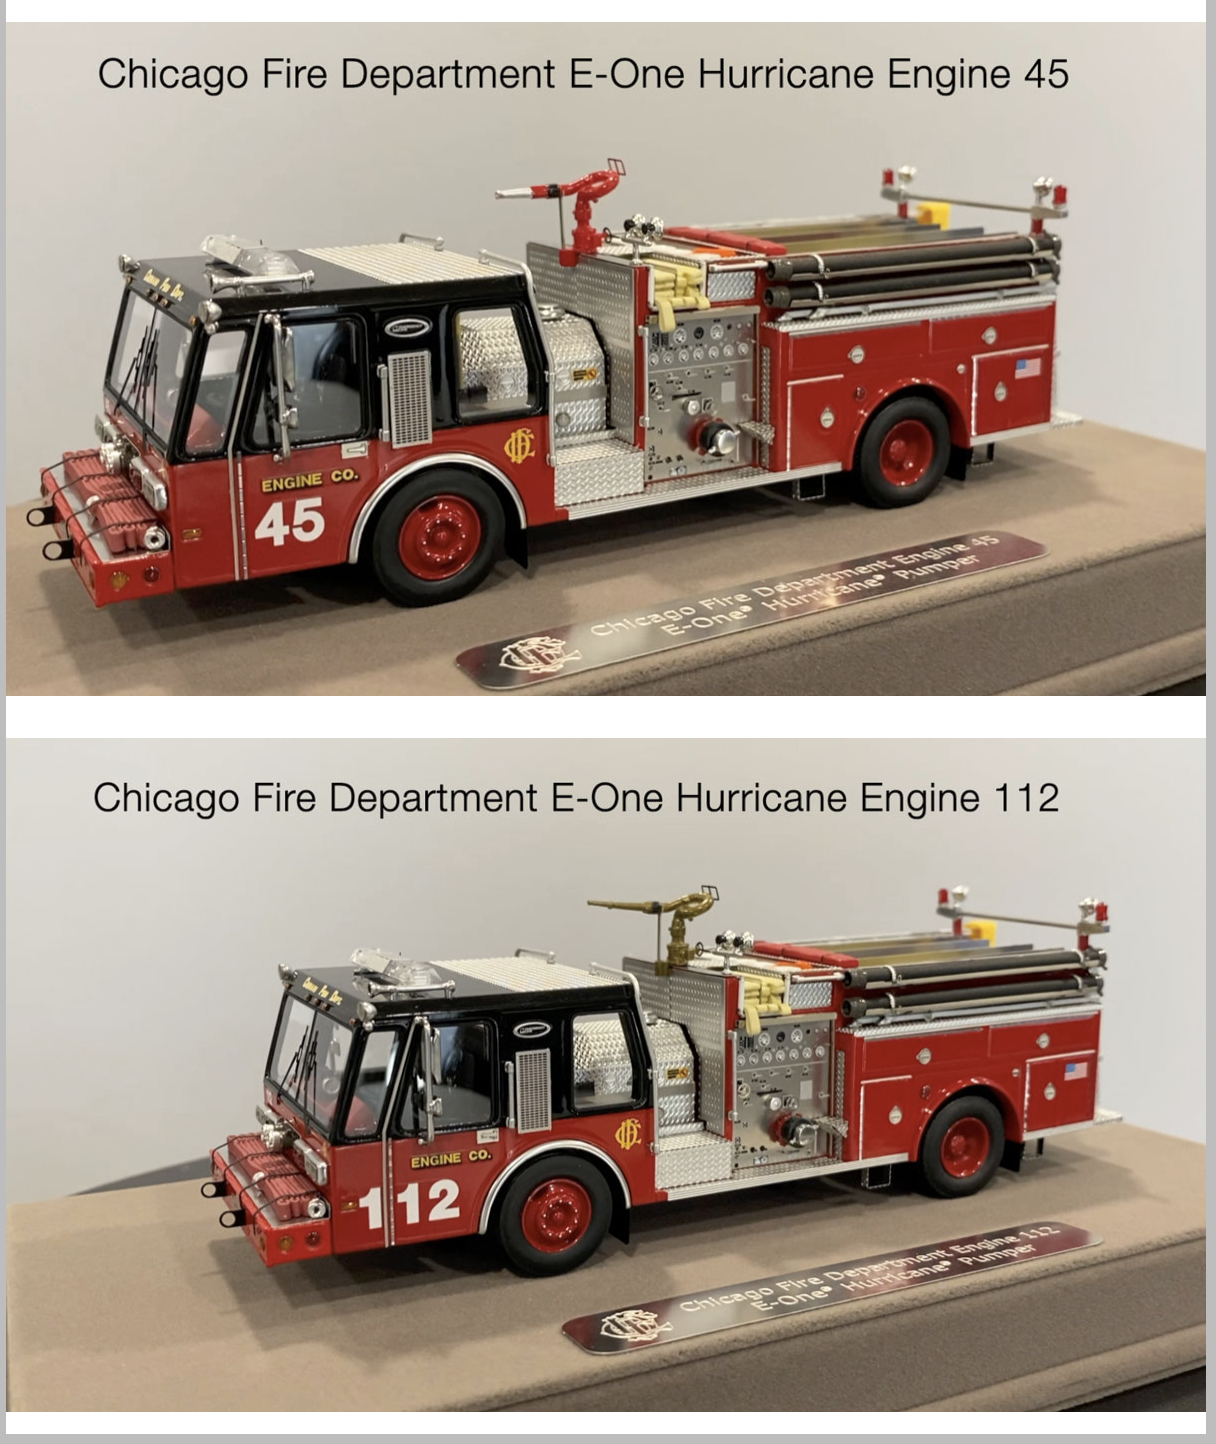 Fire Replicas 1985 E-ONE Hurricane fire engines in Chicago